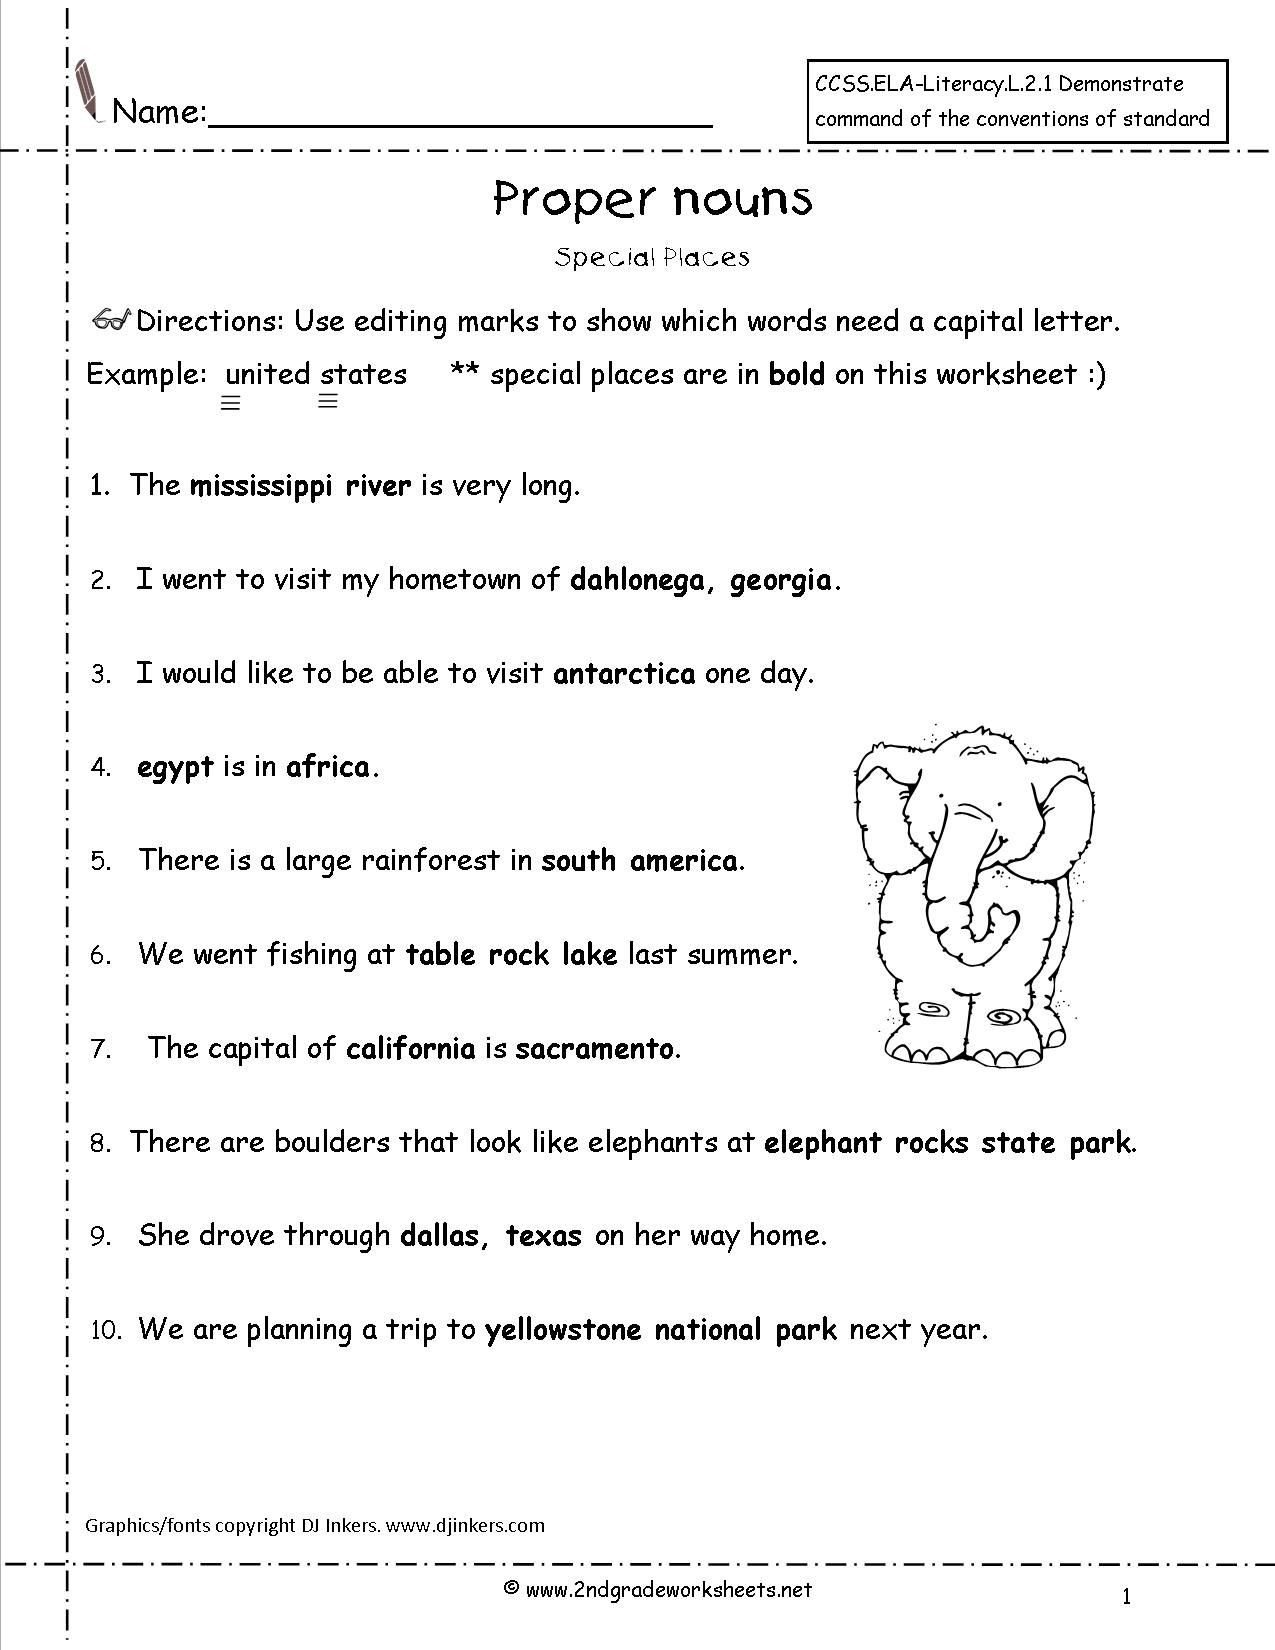 2nd Grade Proper Nouns Worksheet Mon and Proper Nouns Worksheets From the Teacher S Guide